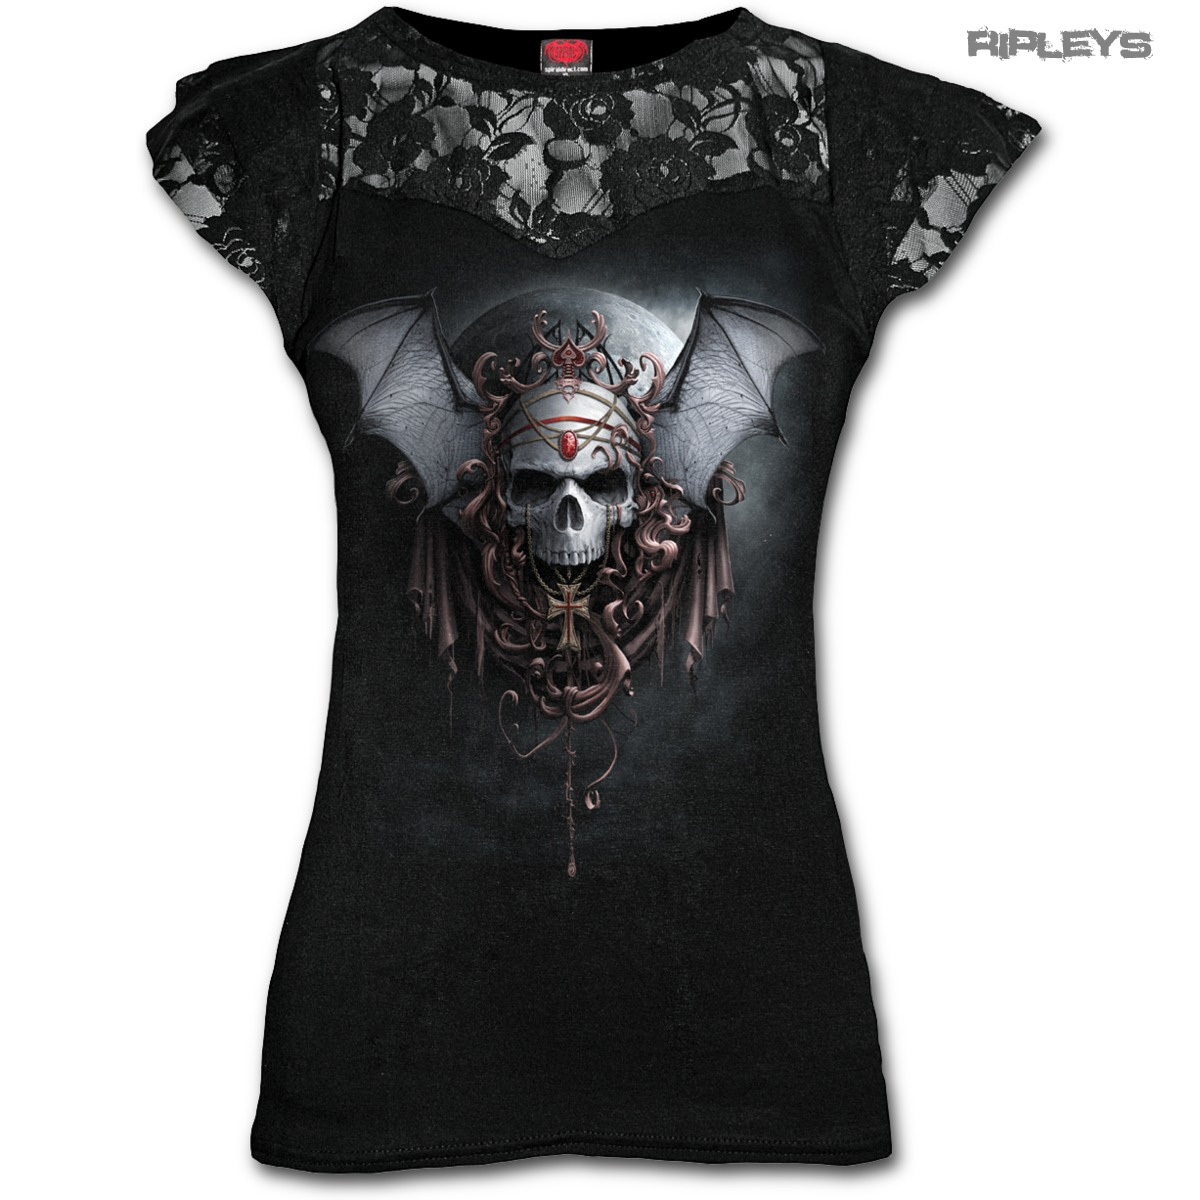 SPIRAL-DIRECT-Ladies-Black-Gothic-GOTH-NIGHTS-Skull-Top-Lace-Bat-All-Sizes thumbnail 8